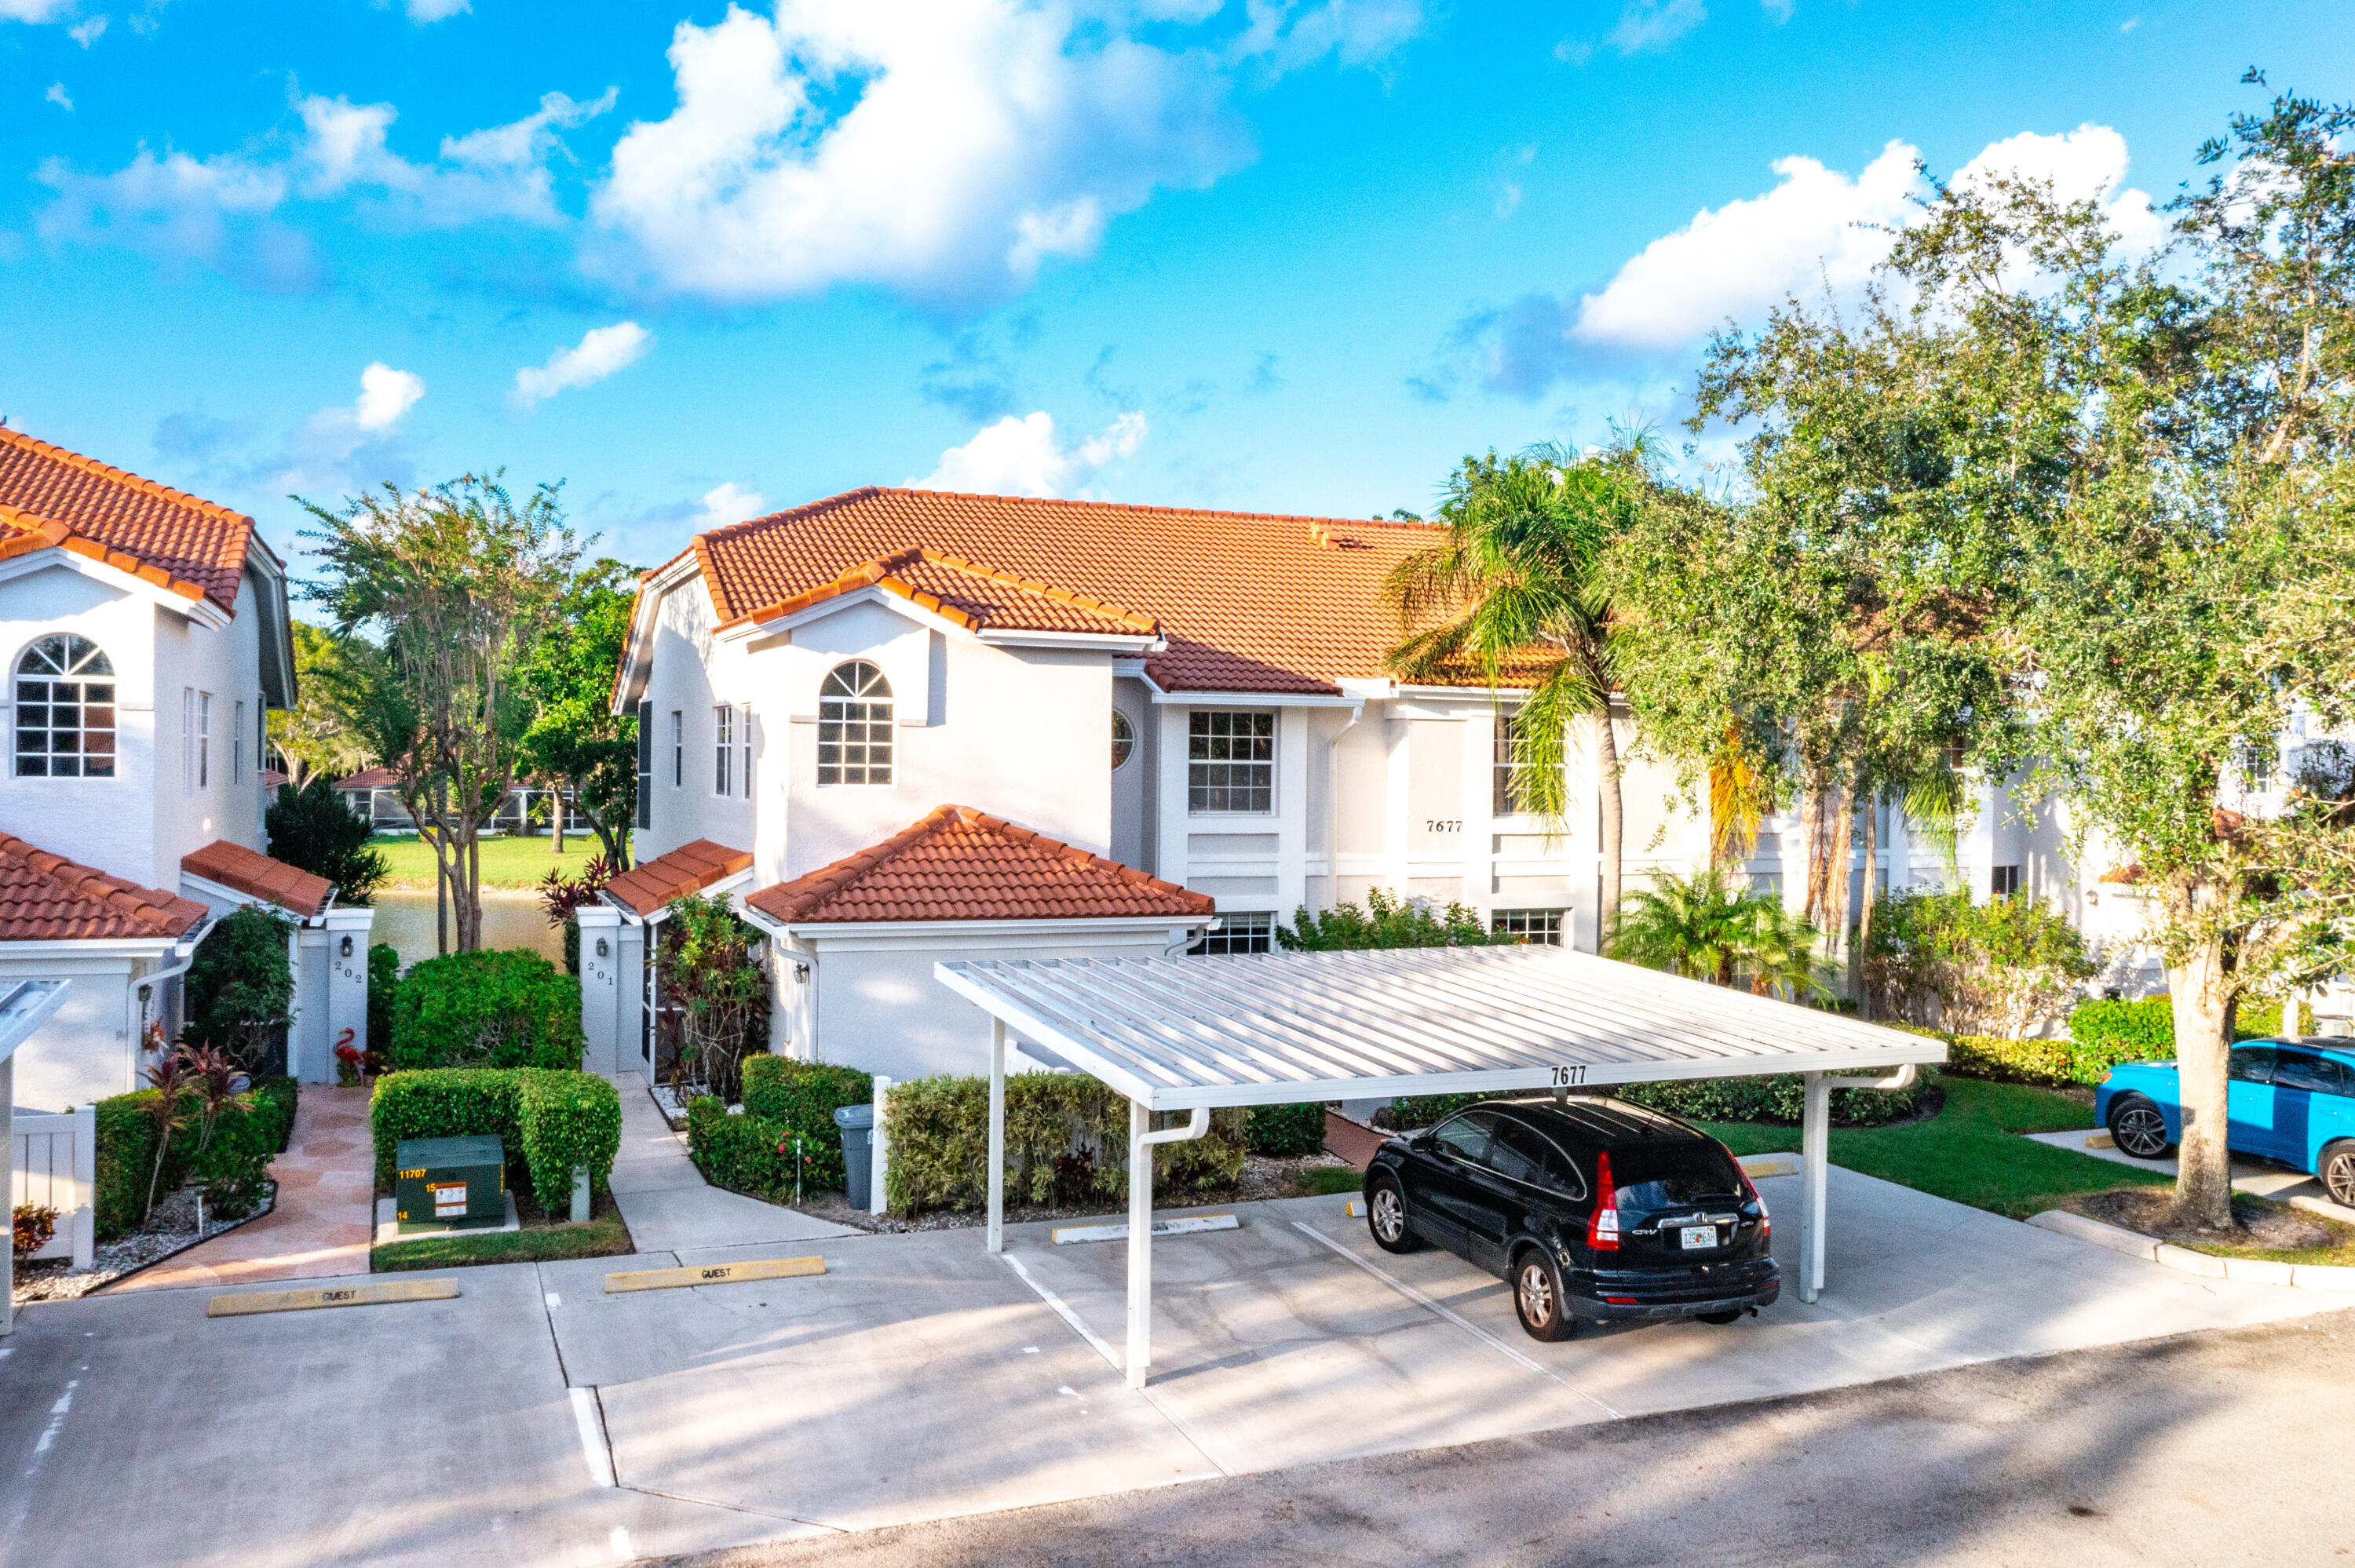 7677  Springwater 201 Place 201 For Sale 10753622, FL